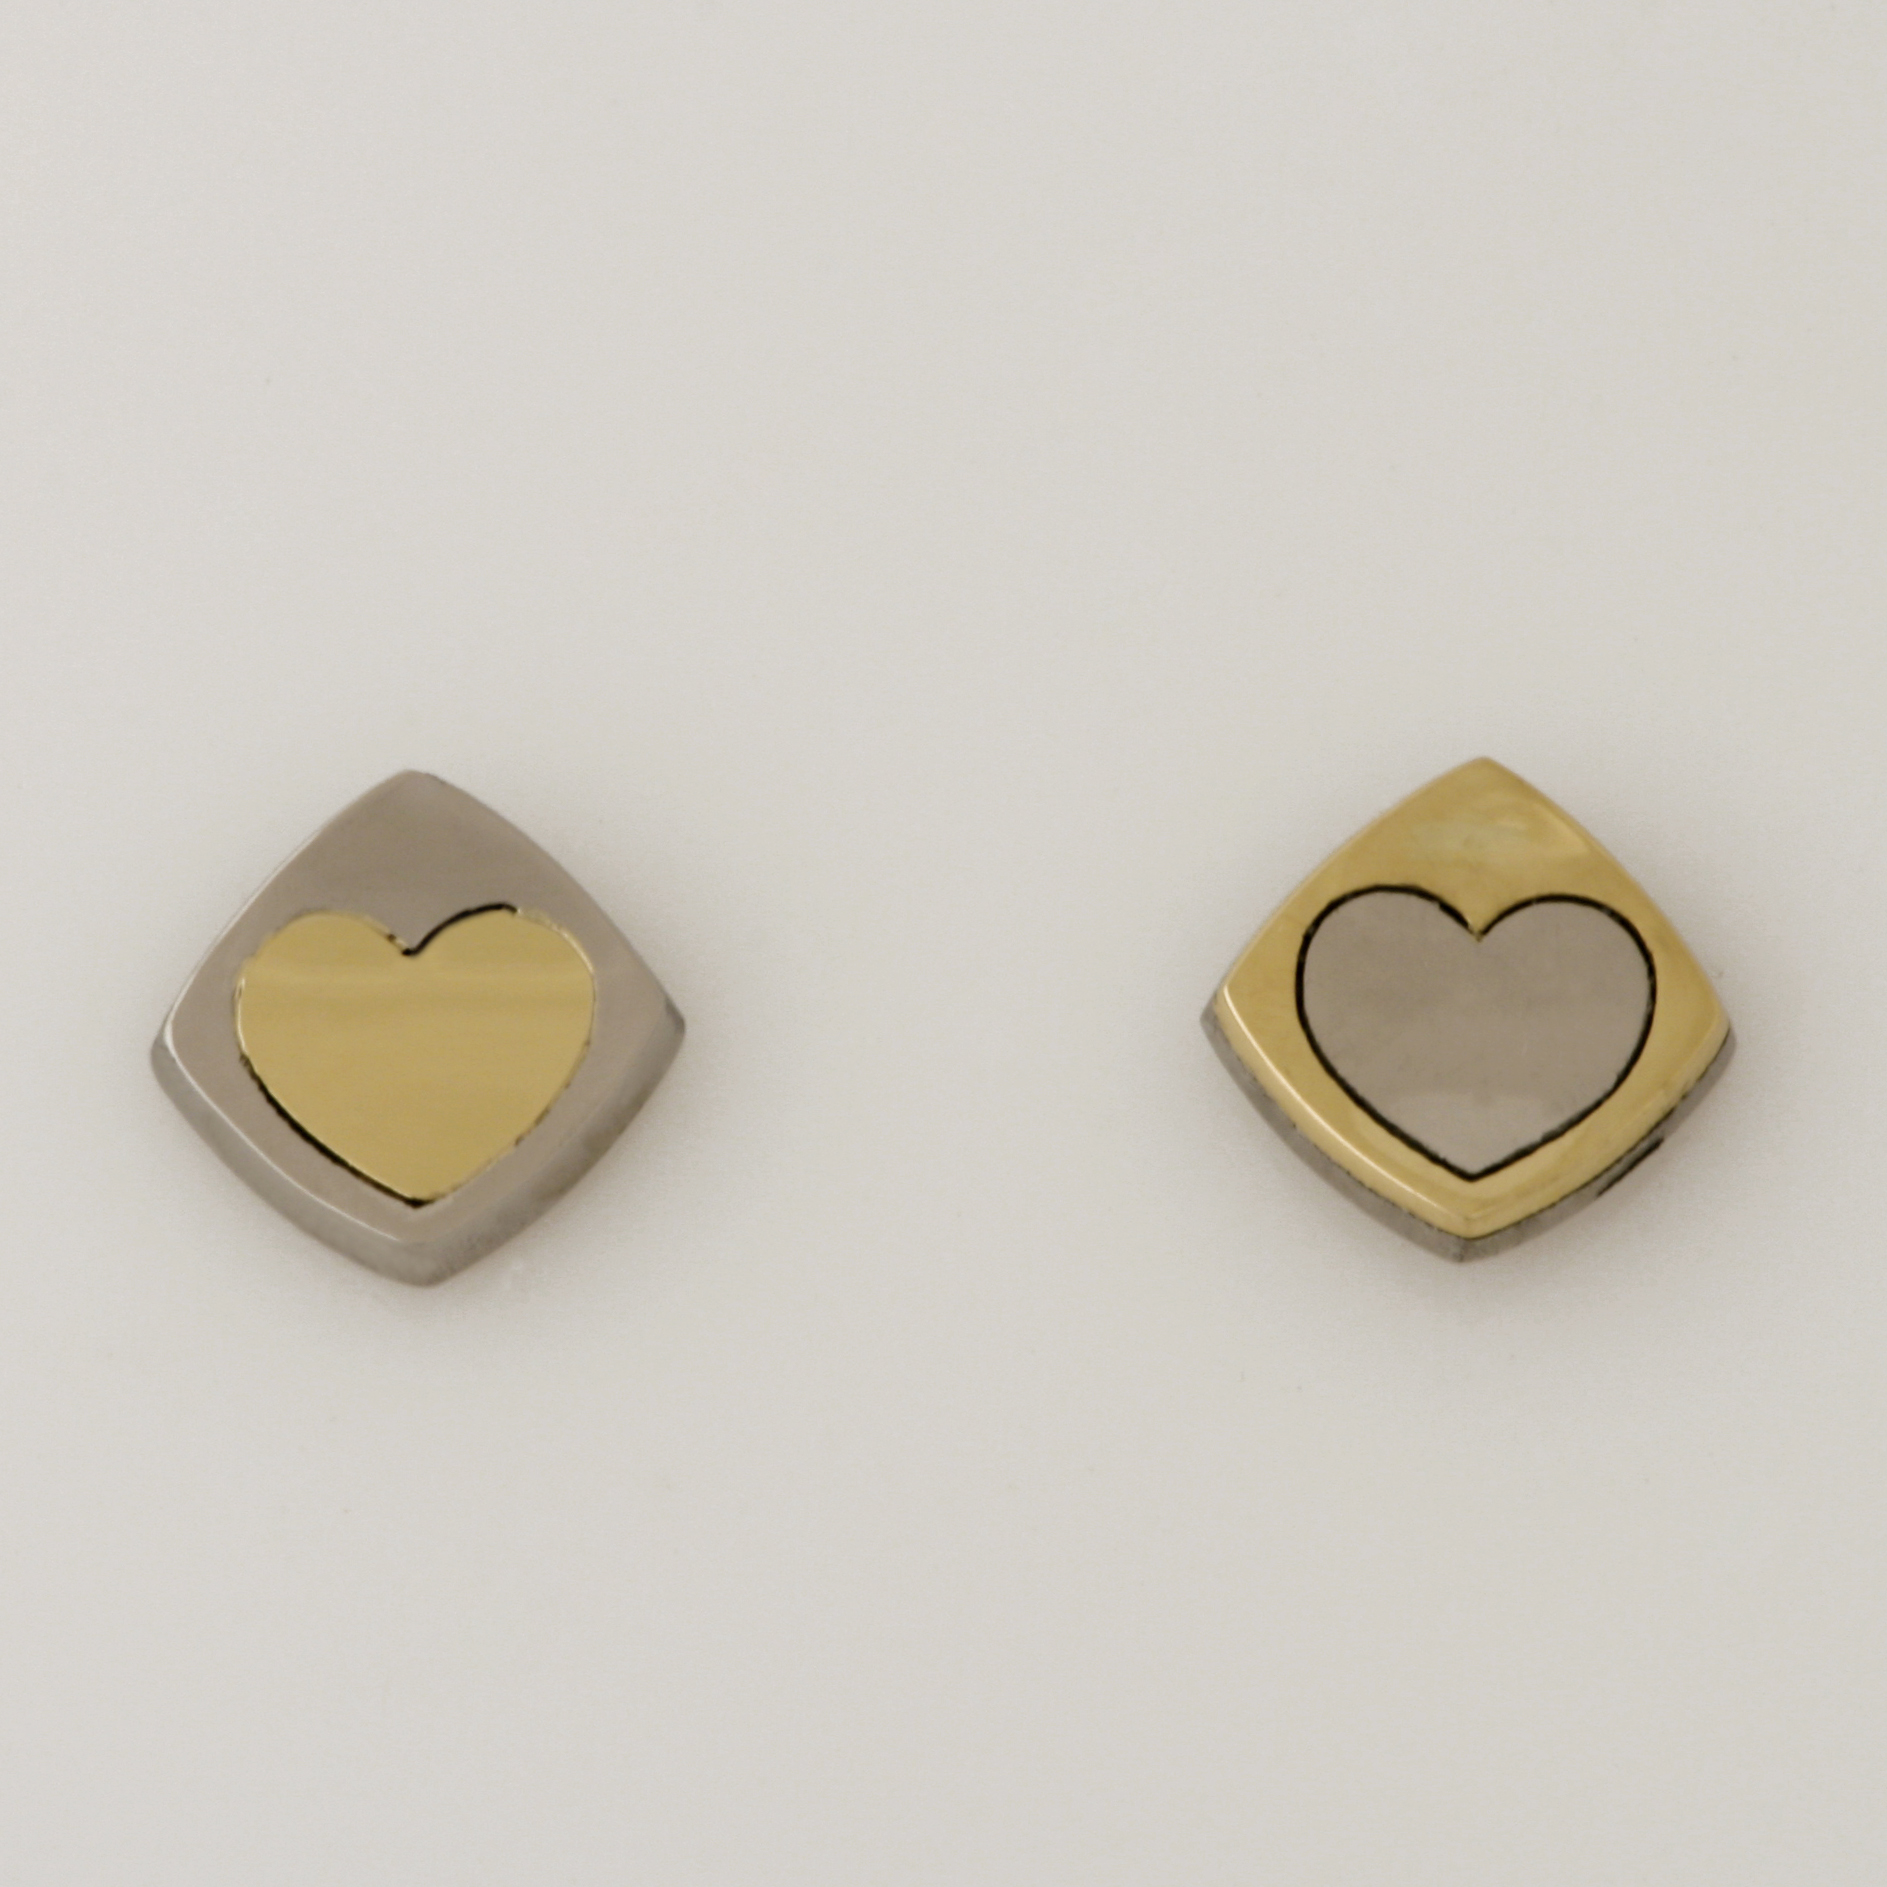 'PLAY' heart earrings made in palladium and 18ct yellow gold